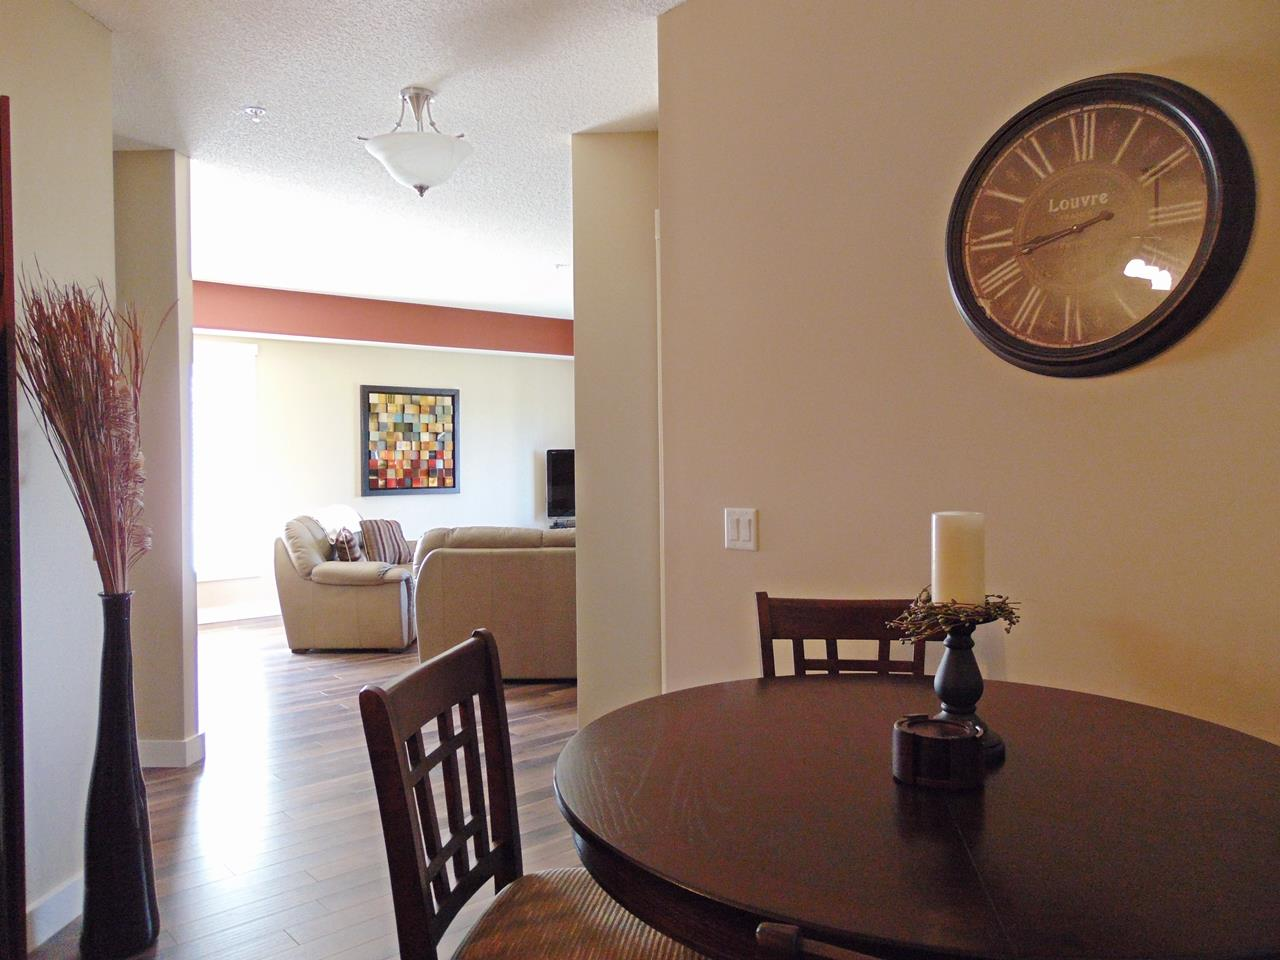 Photo 9: 203 4922 52 Street: Gibbons Condo for sale : MLS® # E4071334